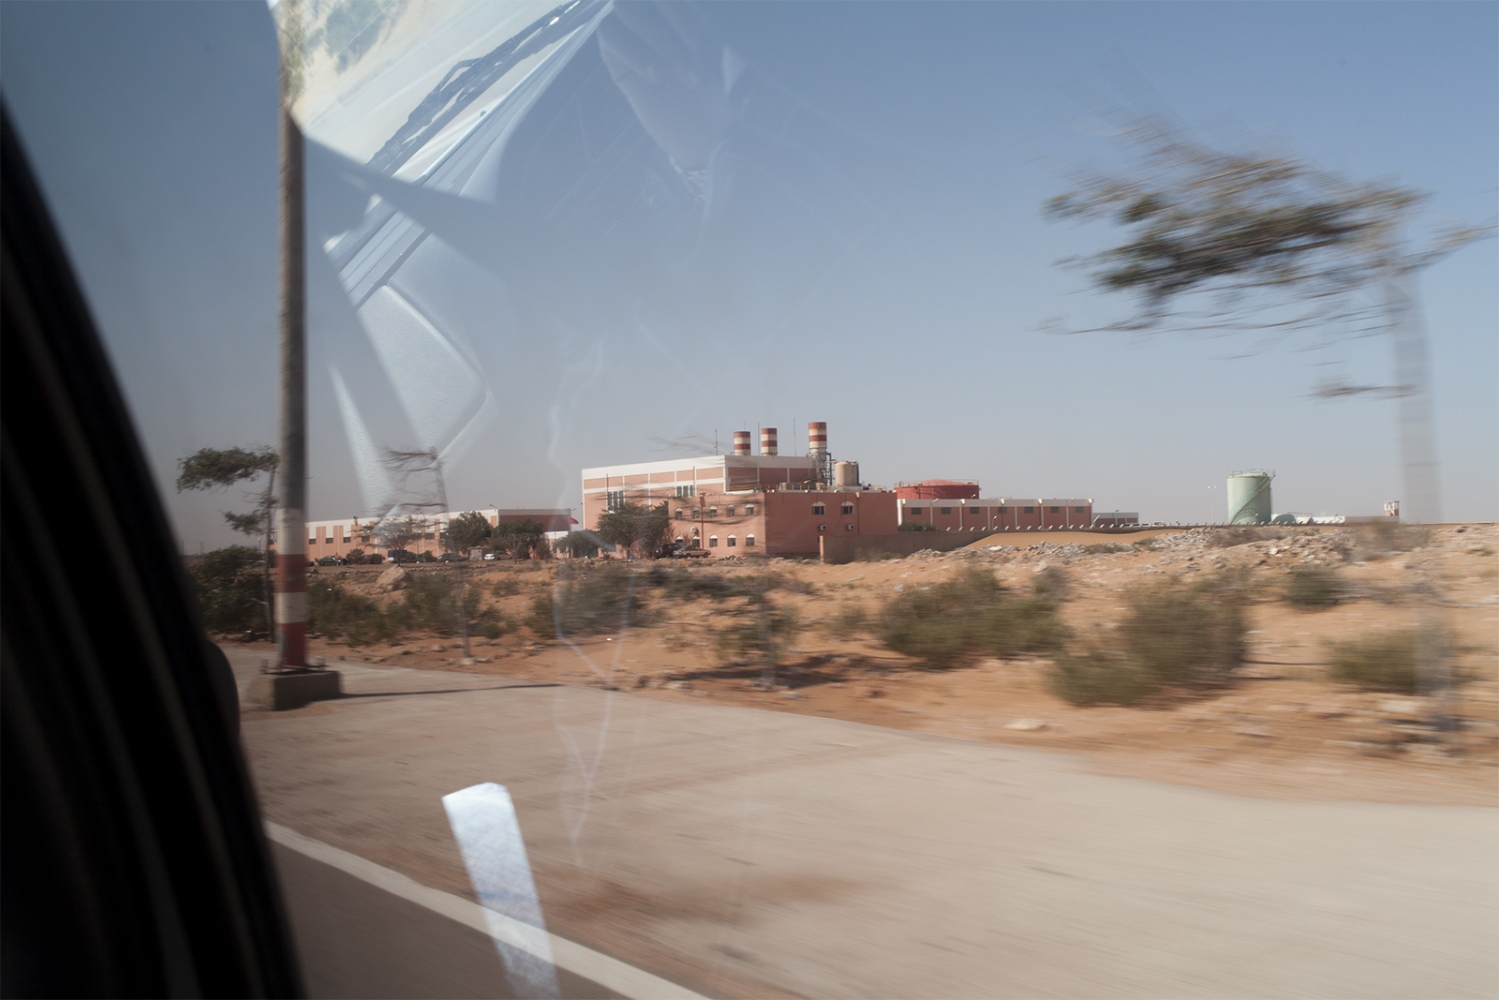 One of the phosphate factory's in the Sahara desert, these are run by the Moroccan authority and none of the workers are Saharawi.